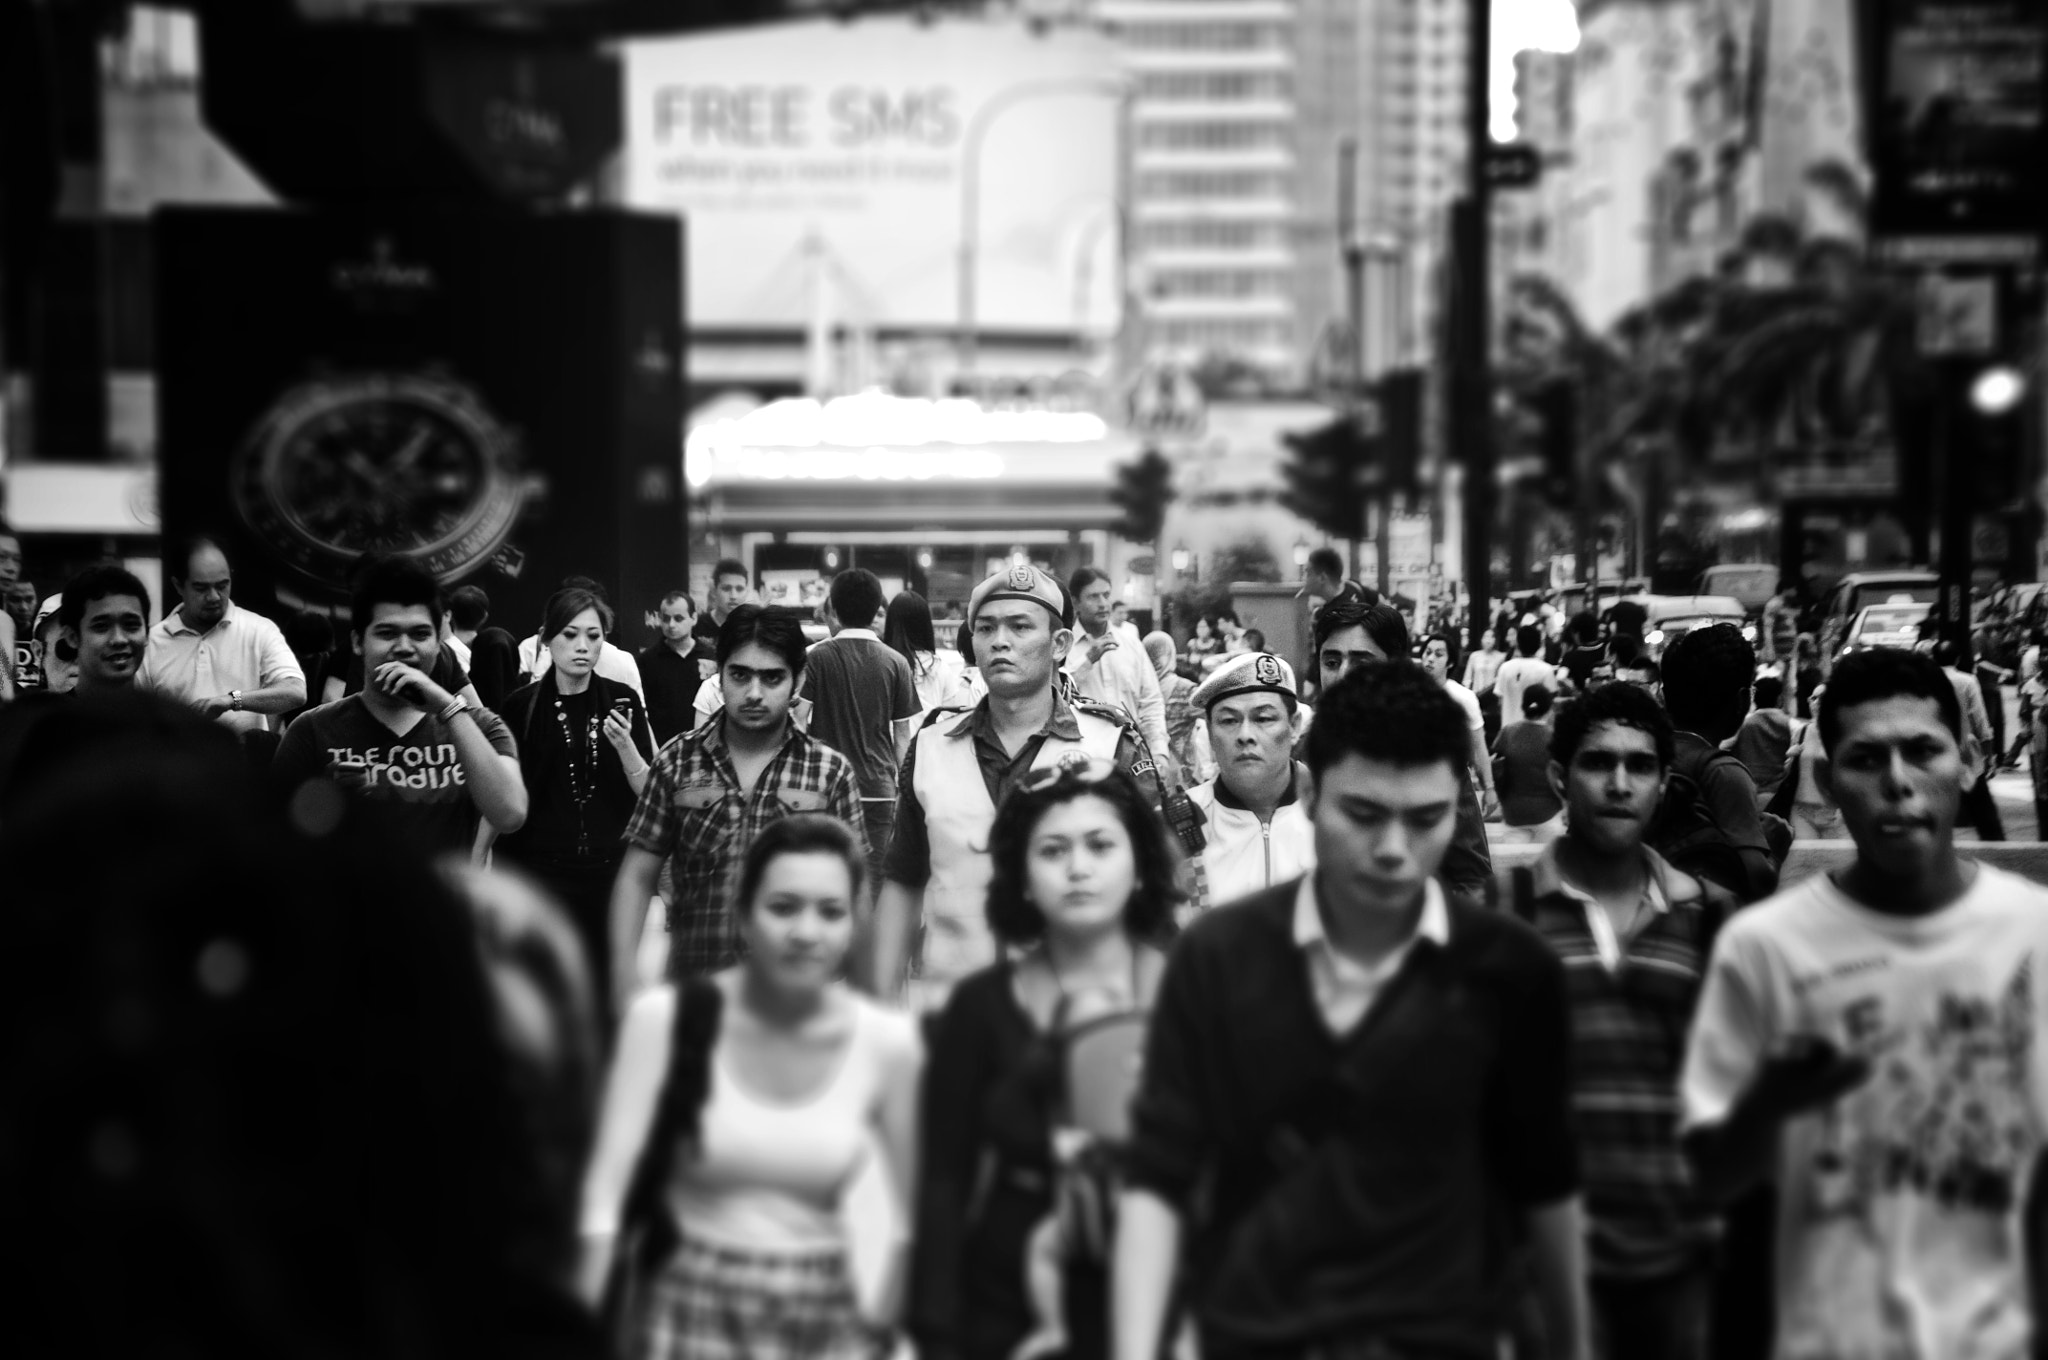 Photograph Security in the crowd by Zulkifli Yusof on 500px